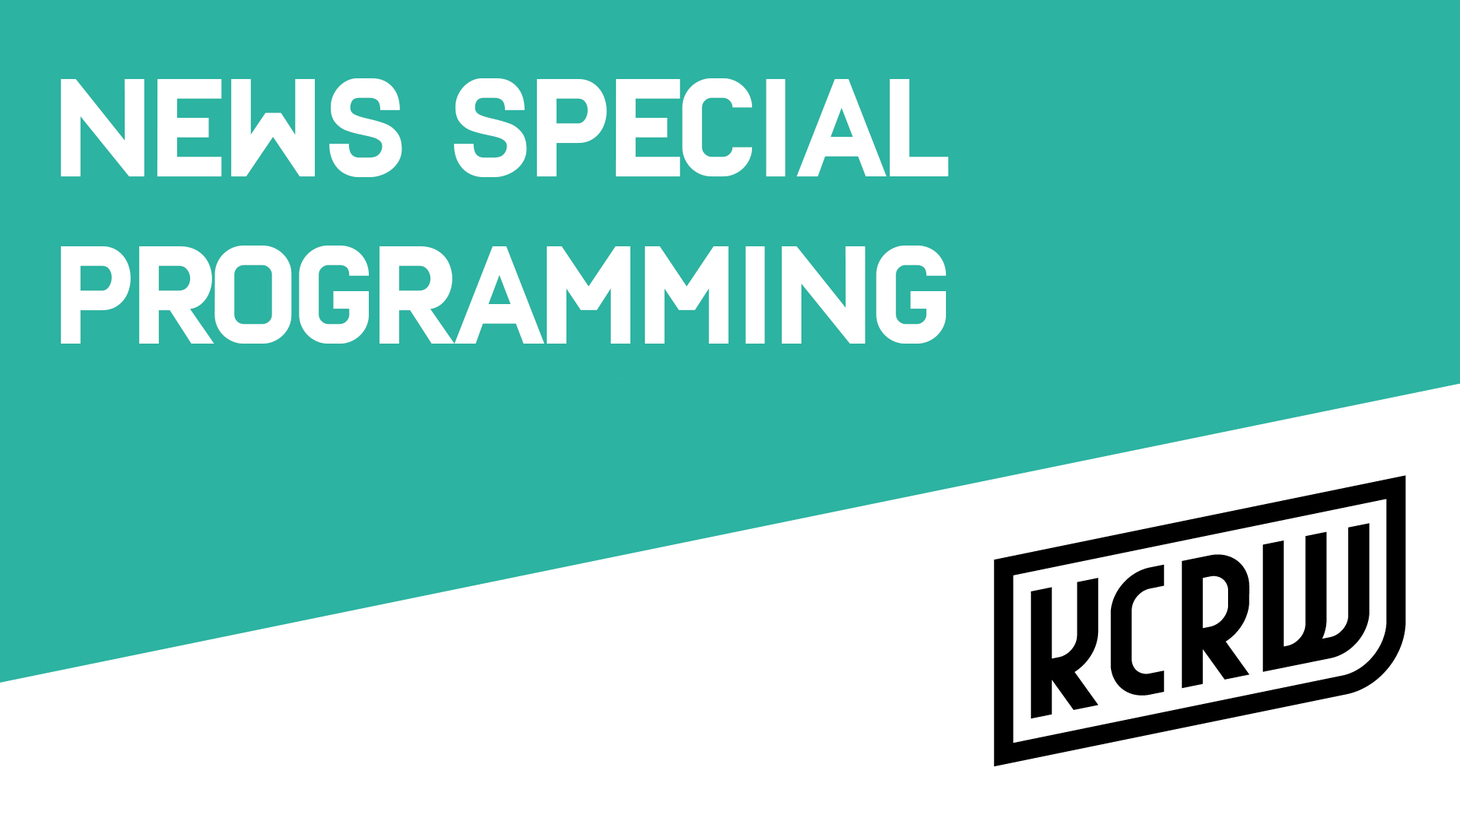 A live election special from KCRW and NPR covering the 2018 midterm elections.